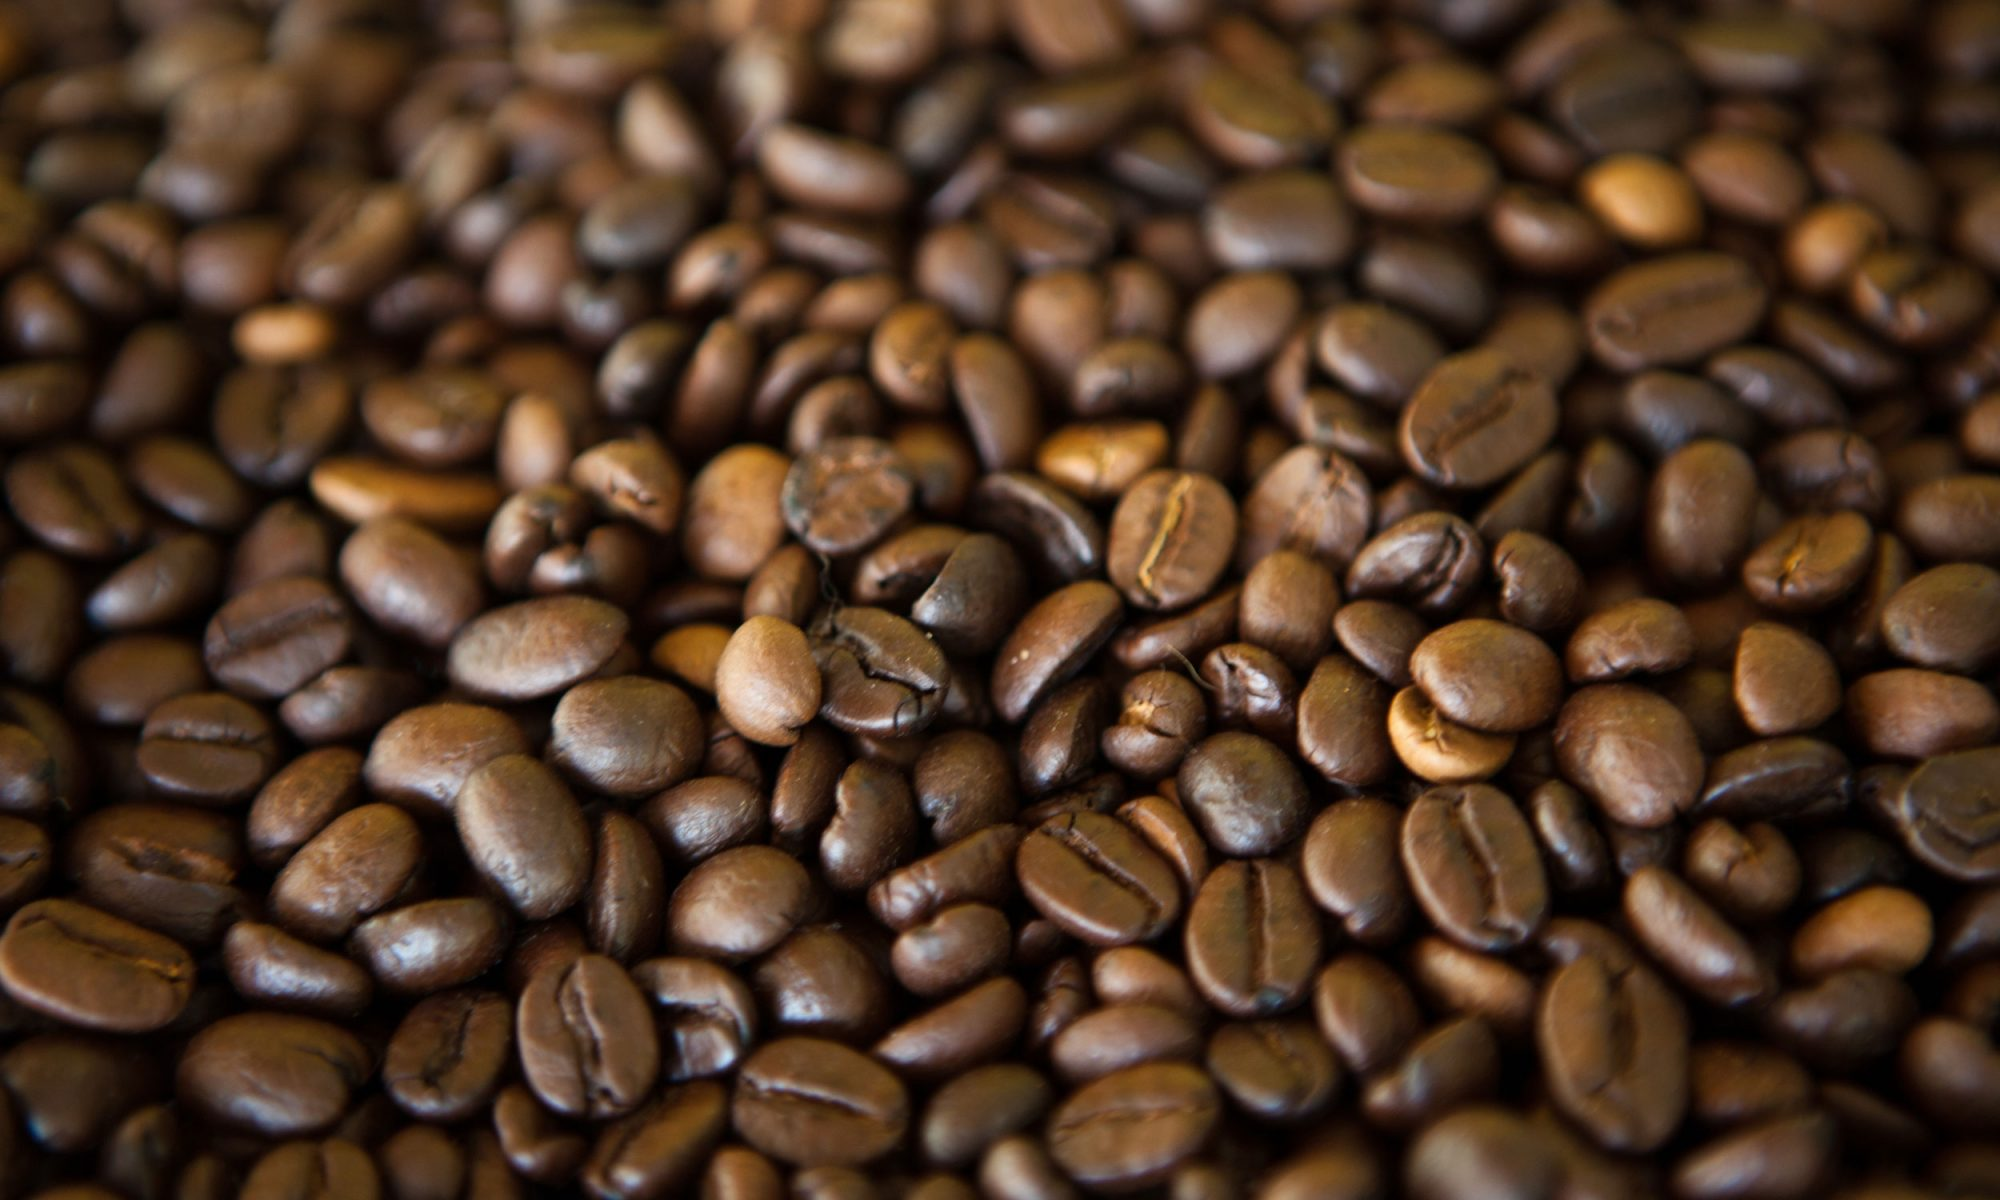 EC: The World's Most Expensive Coffee Costs $68 Per Cup